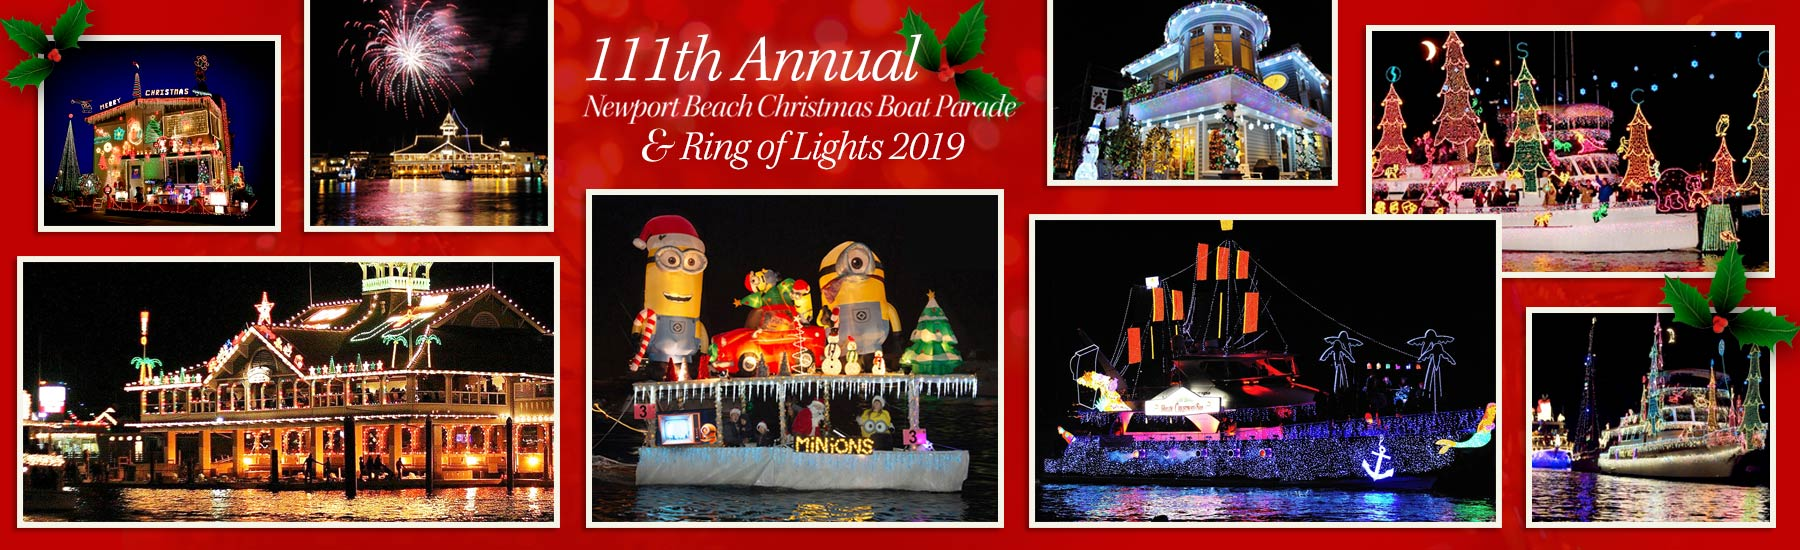 2018 newport beach boat parade website company christmas event and holiday party cruise